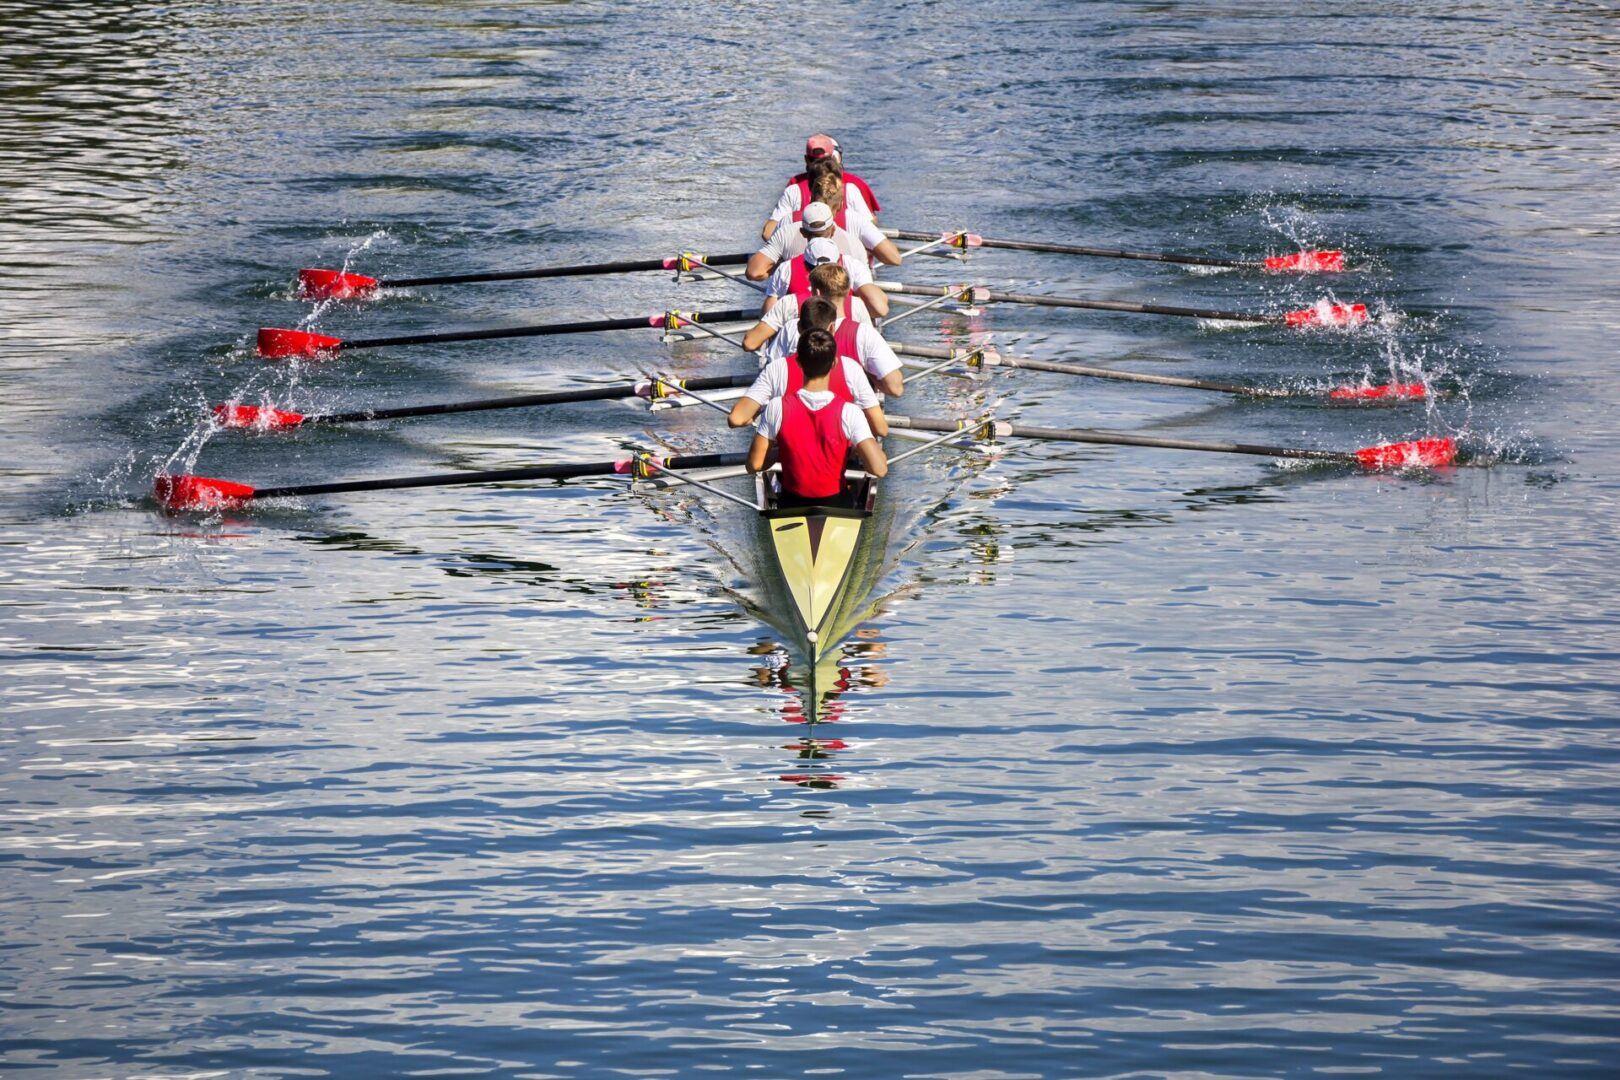 Rowers,In,Eight-oar,Rowing,Boats,On,The,Tranquil,Lake